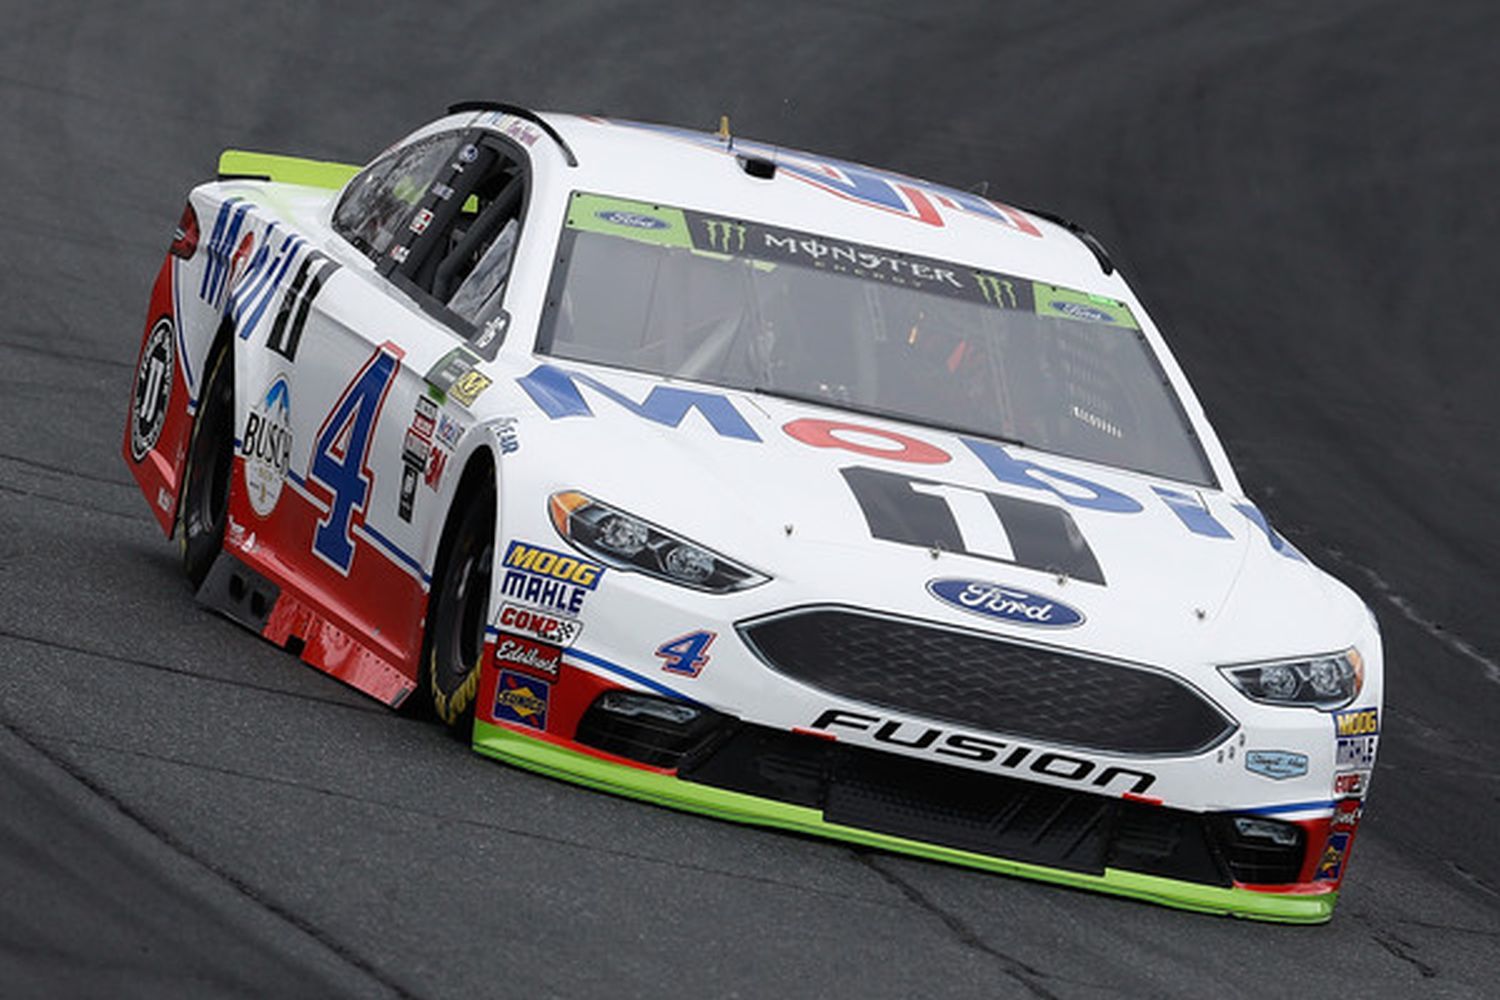 Mobil 1 And Stewart Haas Racing Gear Up For The 2018 Nascar Season